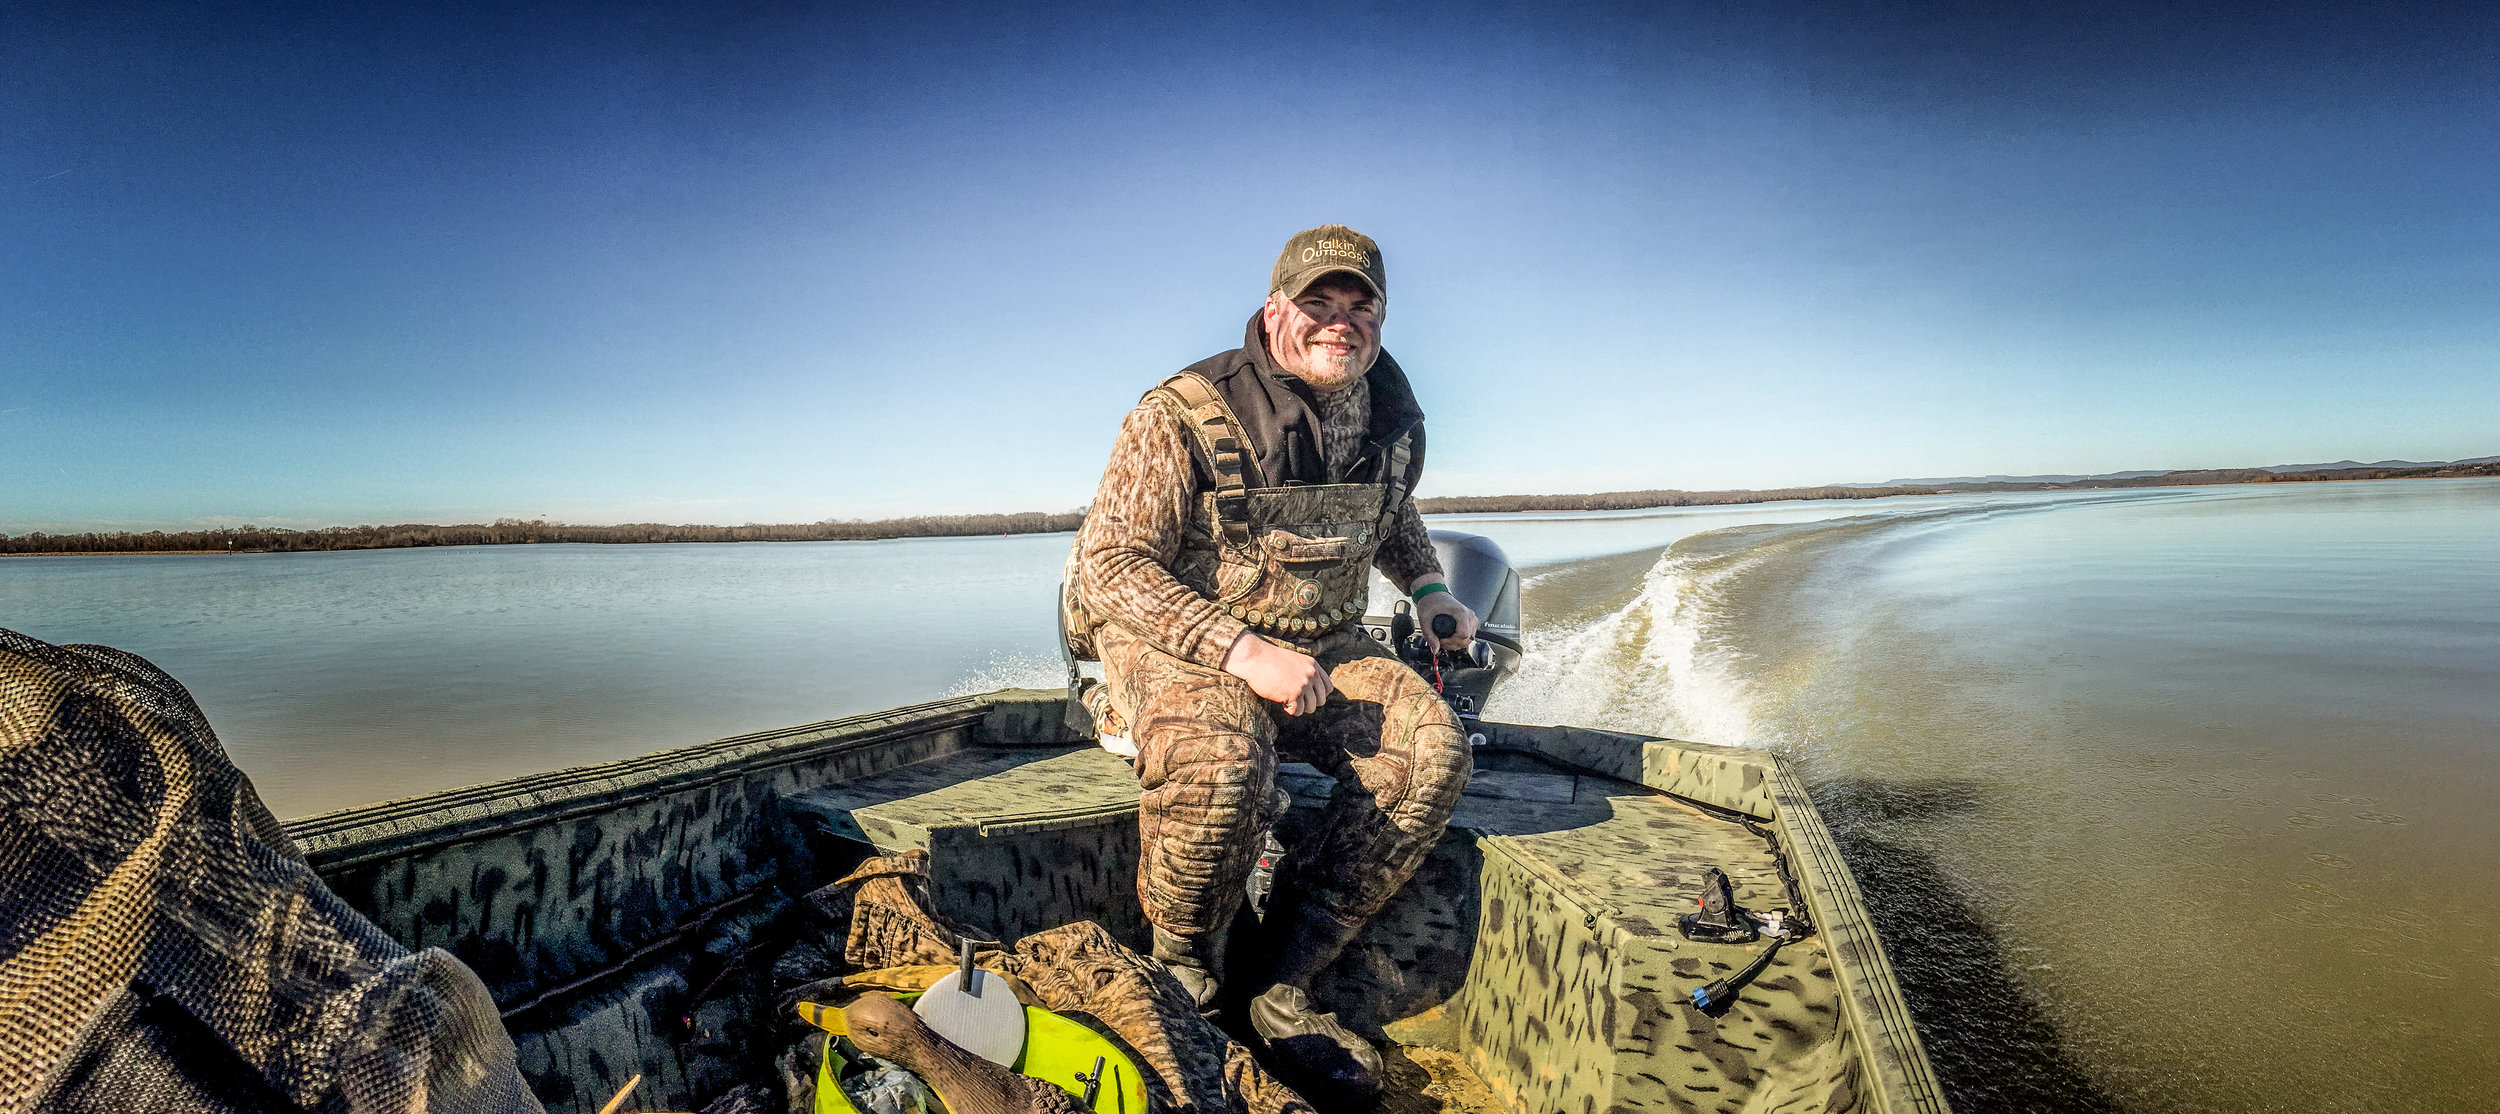 Hunter Spencer Griffith has built a lifetime's worth of friendships chasing ducks across Arkansas, from the Delta all the way up to this boat trip on Lake Dardanelle.